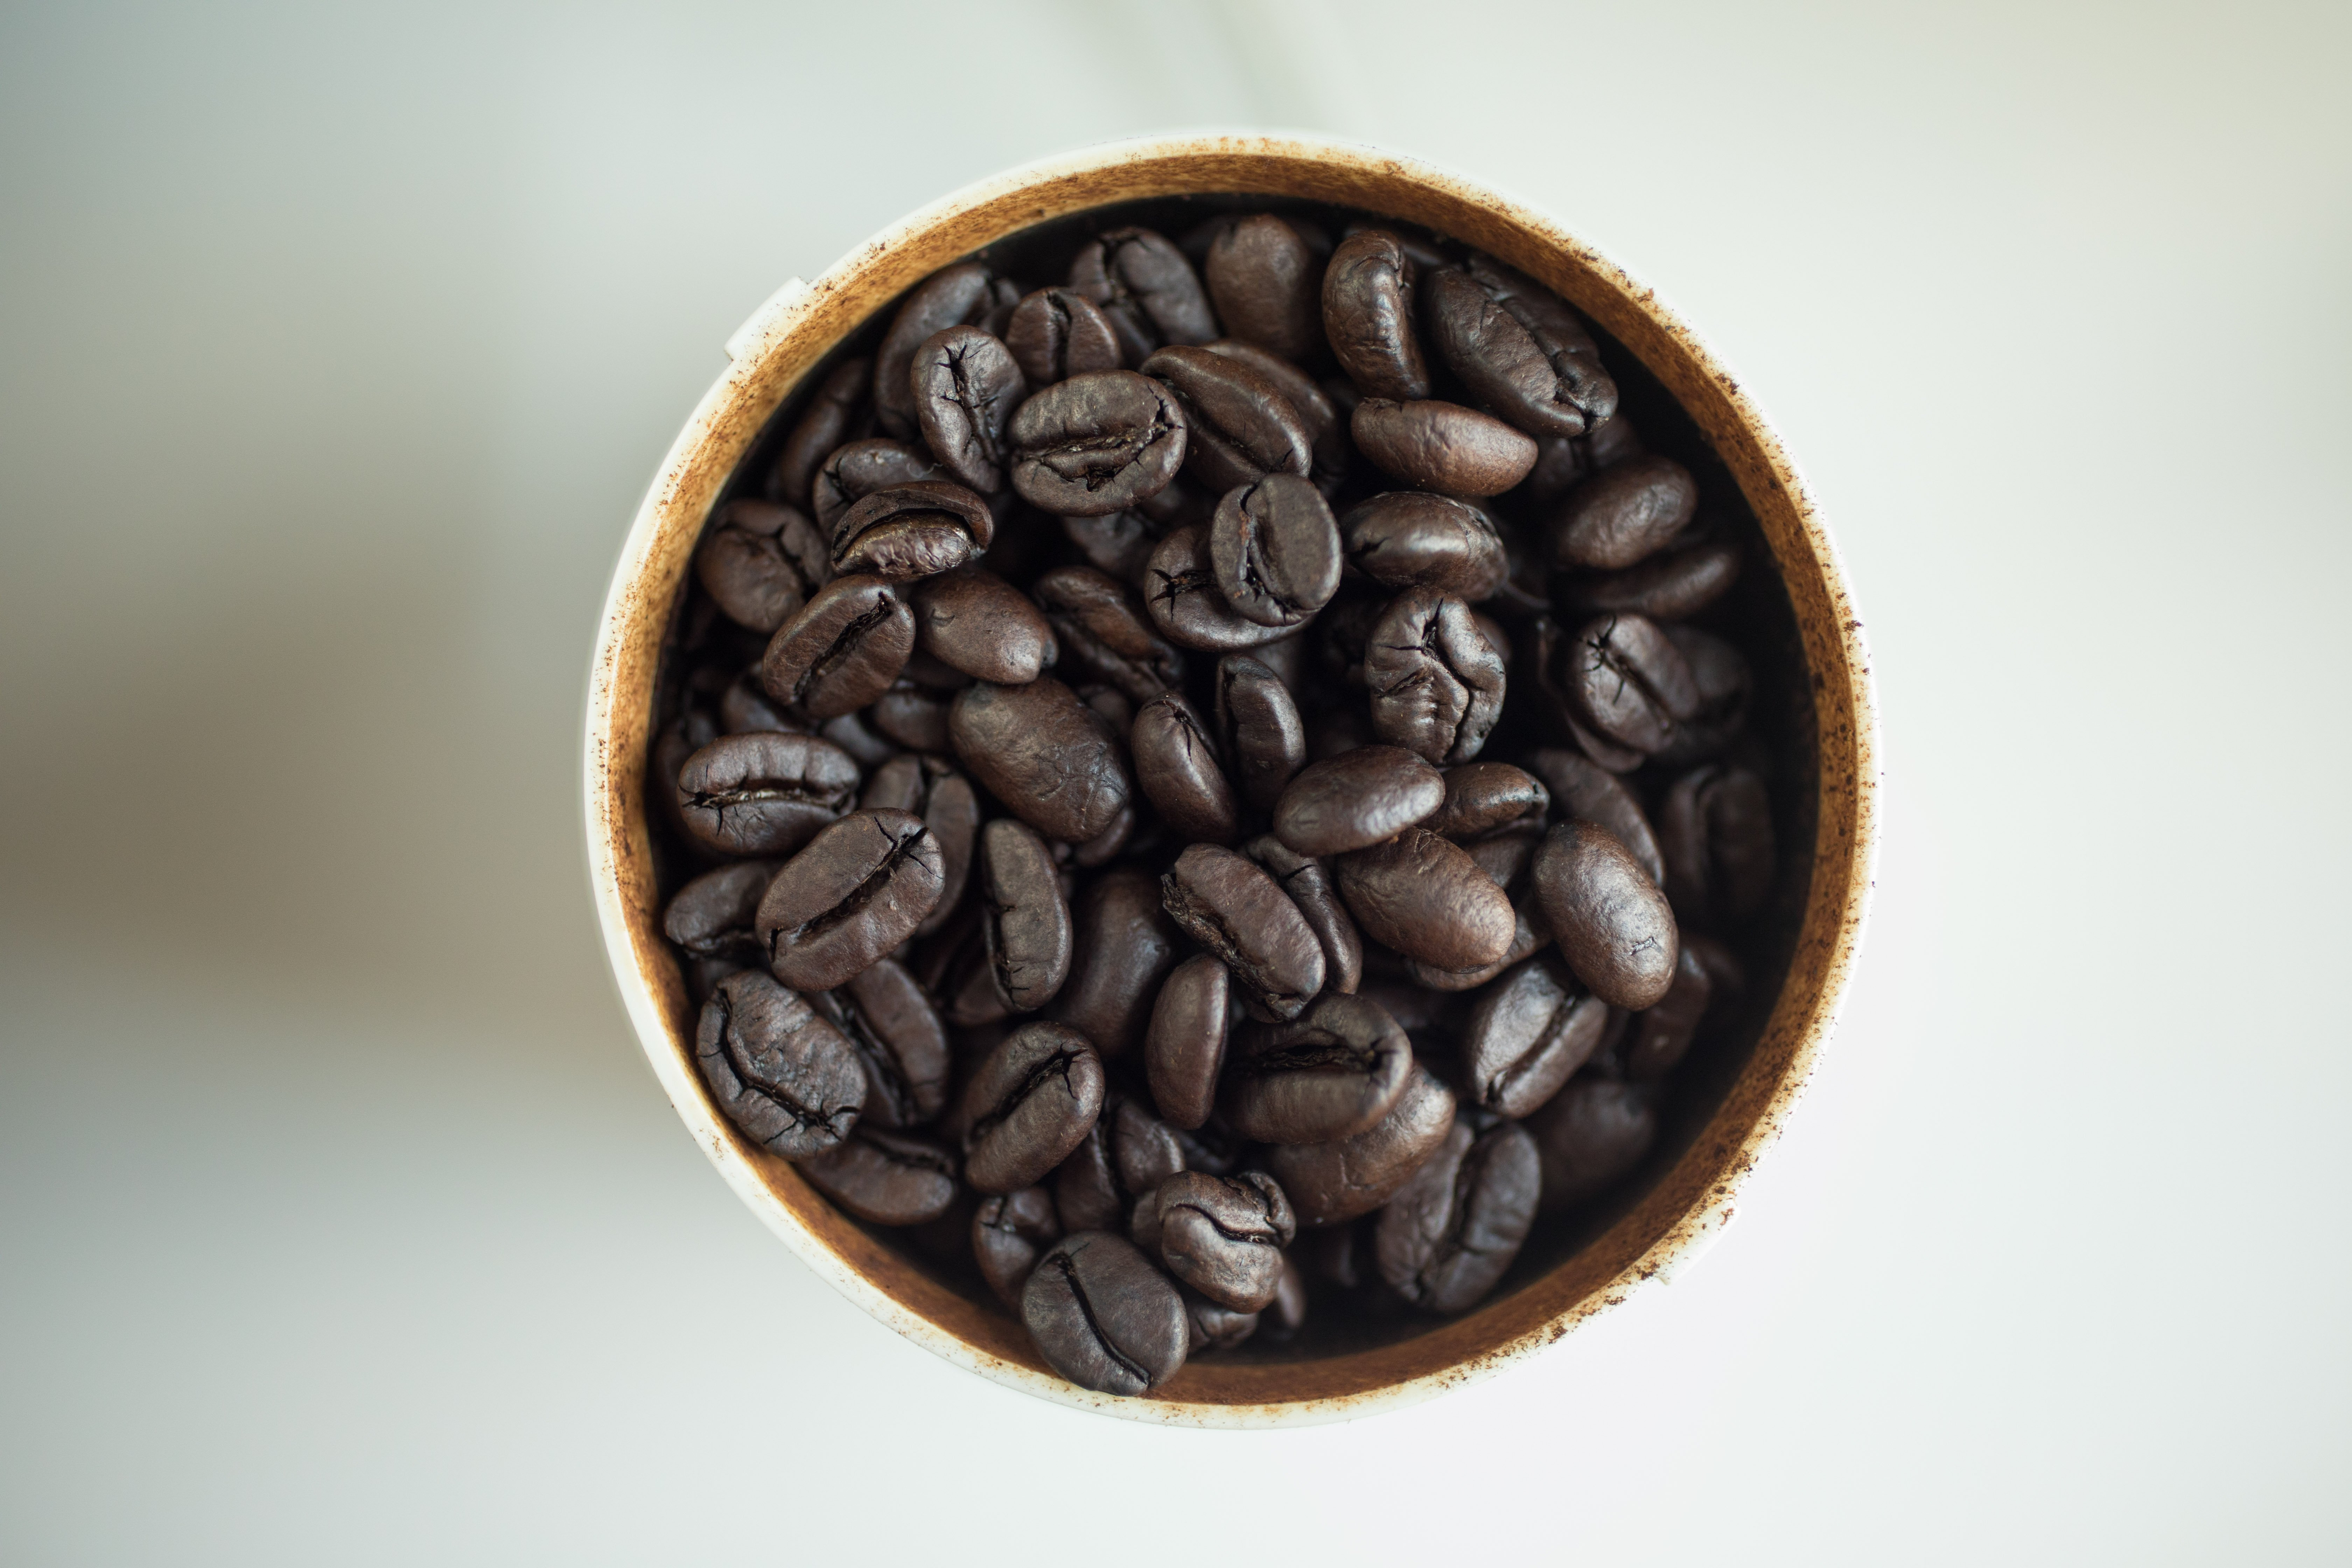 Caffeine Coffee How Much Everything You Ever Wanted To Know About Coffee And Your Health